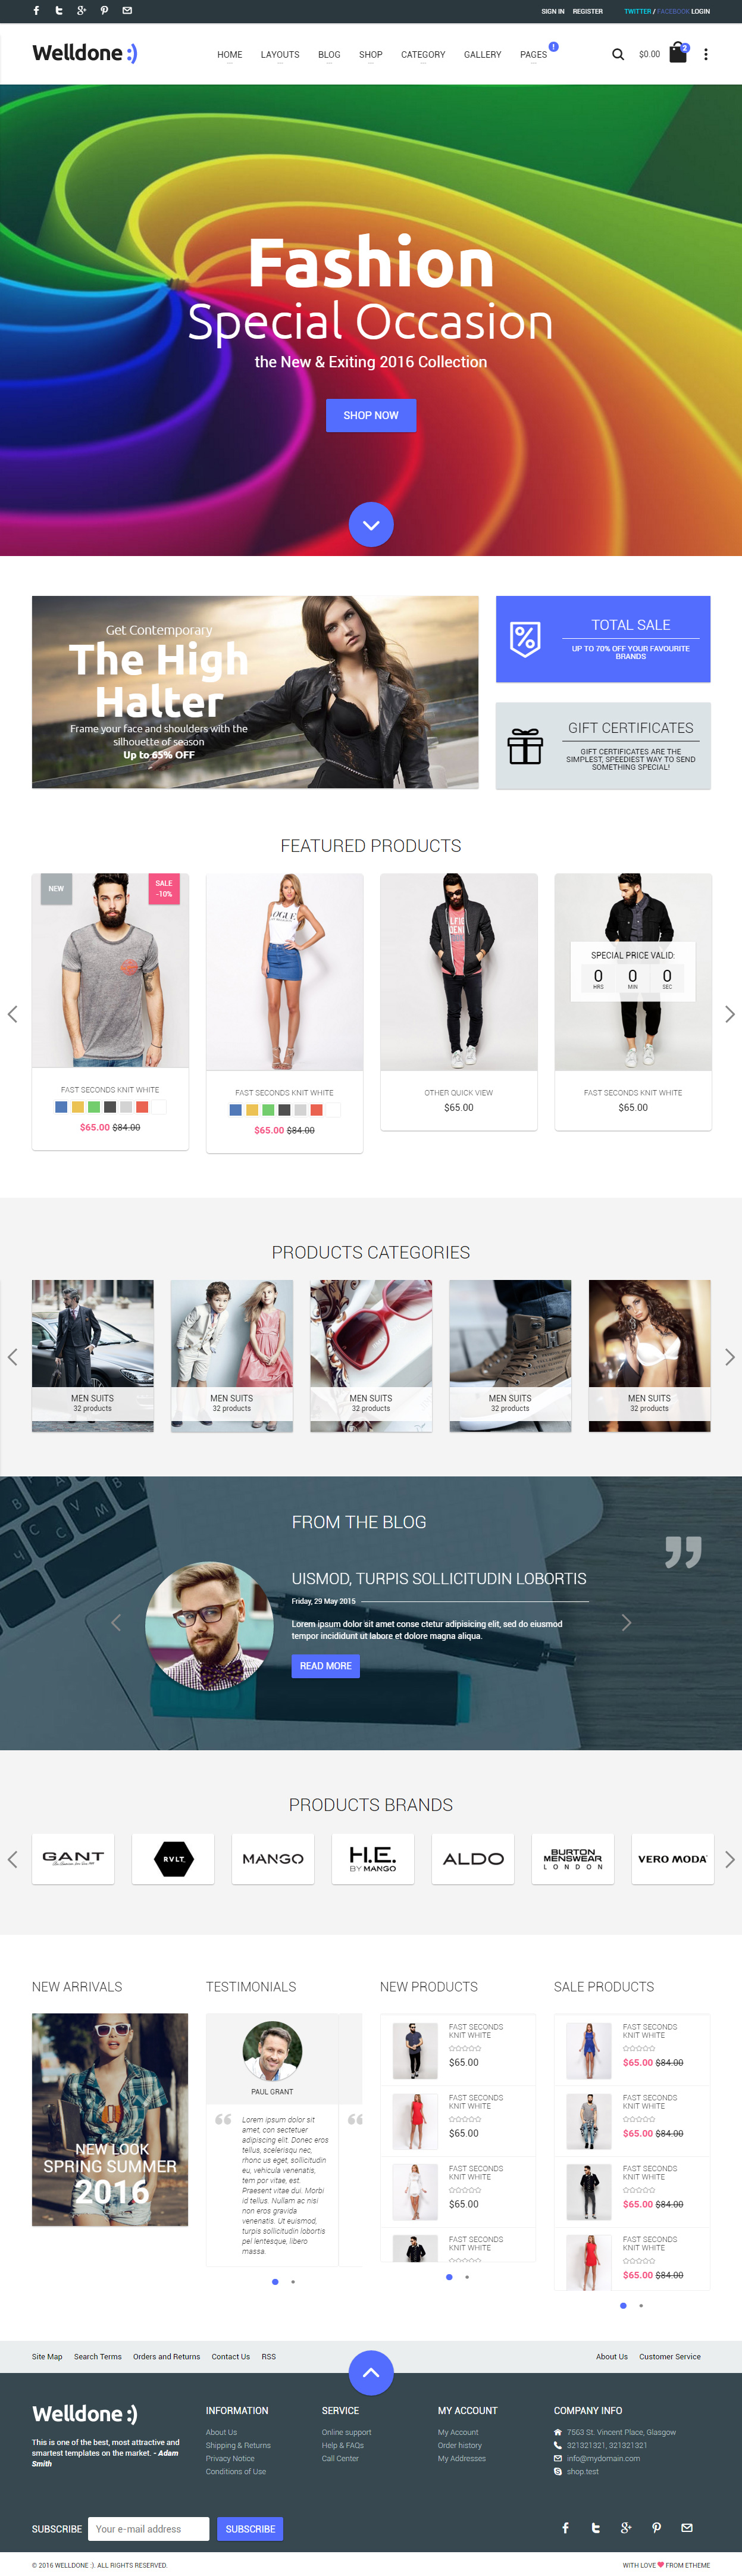 40 Best Responsive Parallax Scrolling Website Template